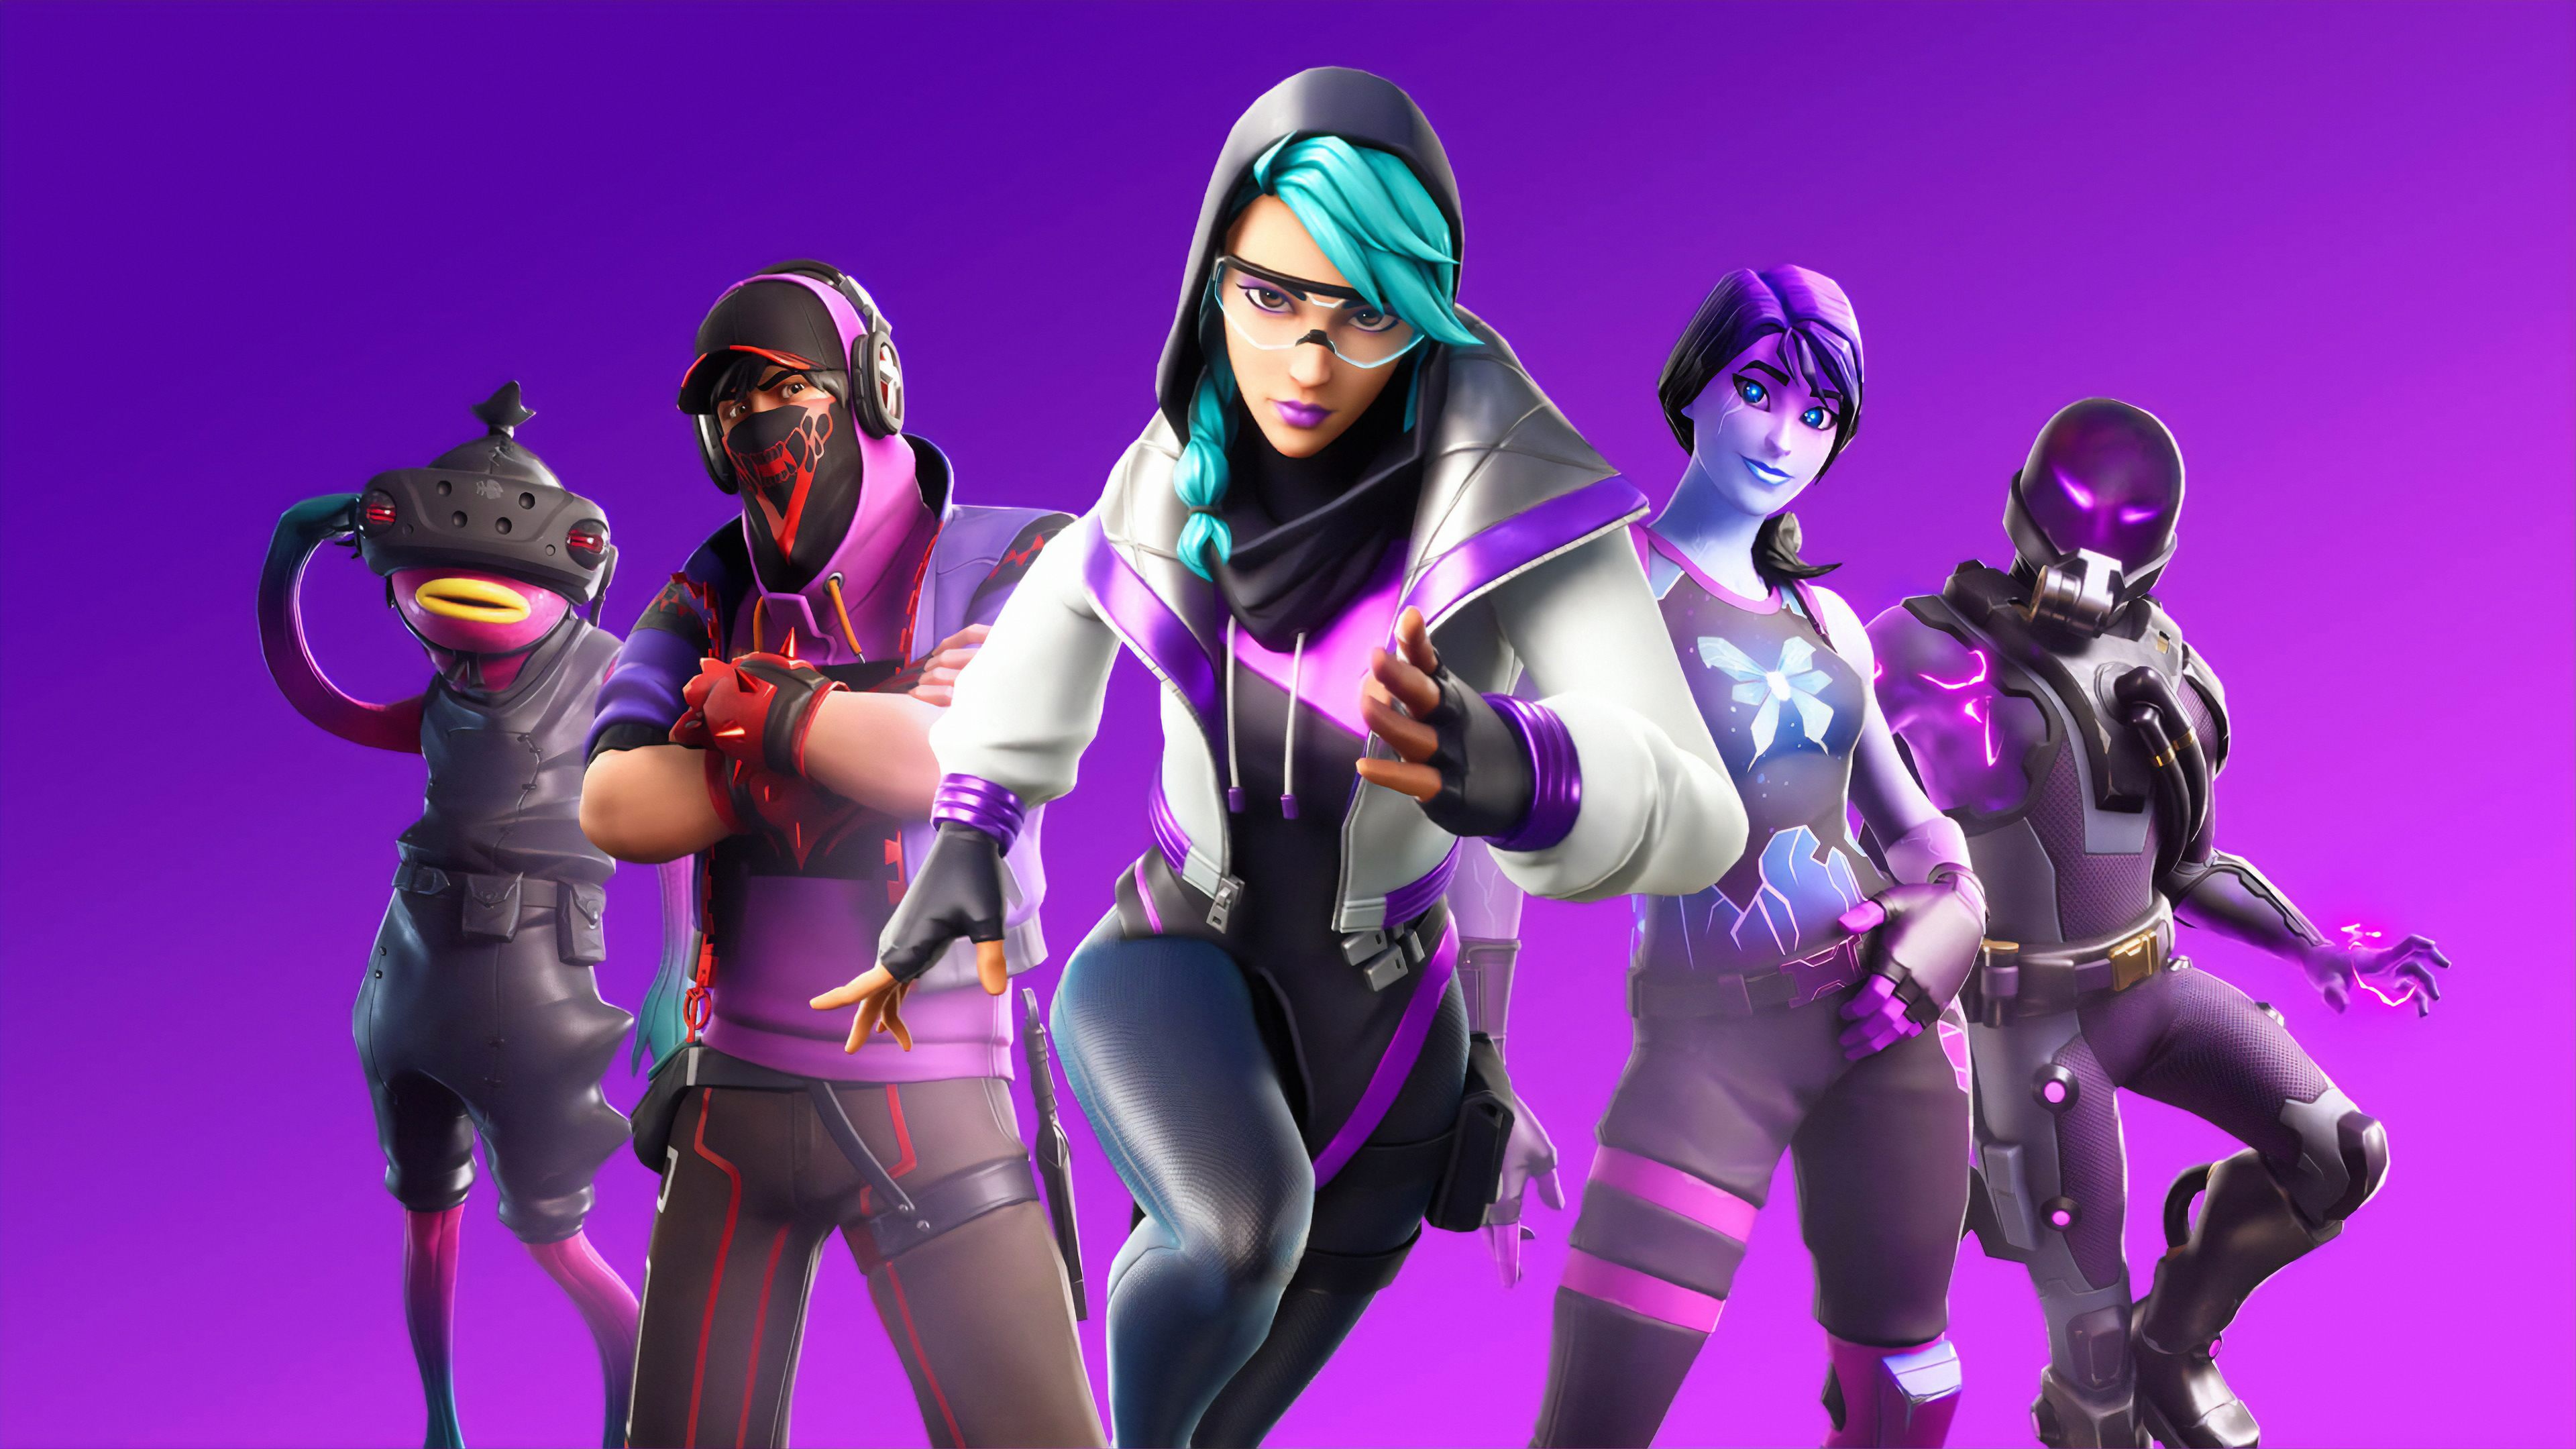 Fortnite Save The World Wallpaper Hd Games 4k Wallpapers Images